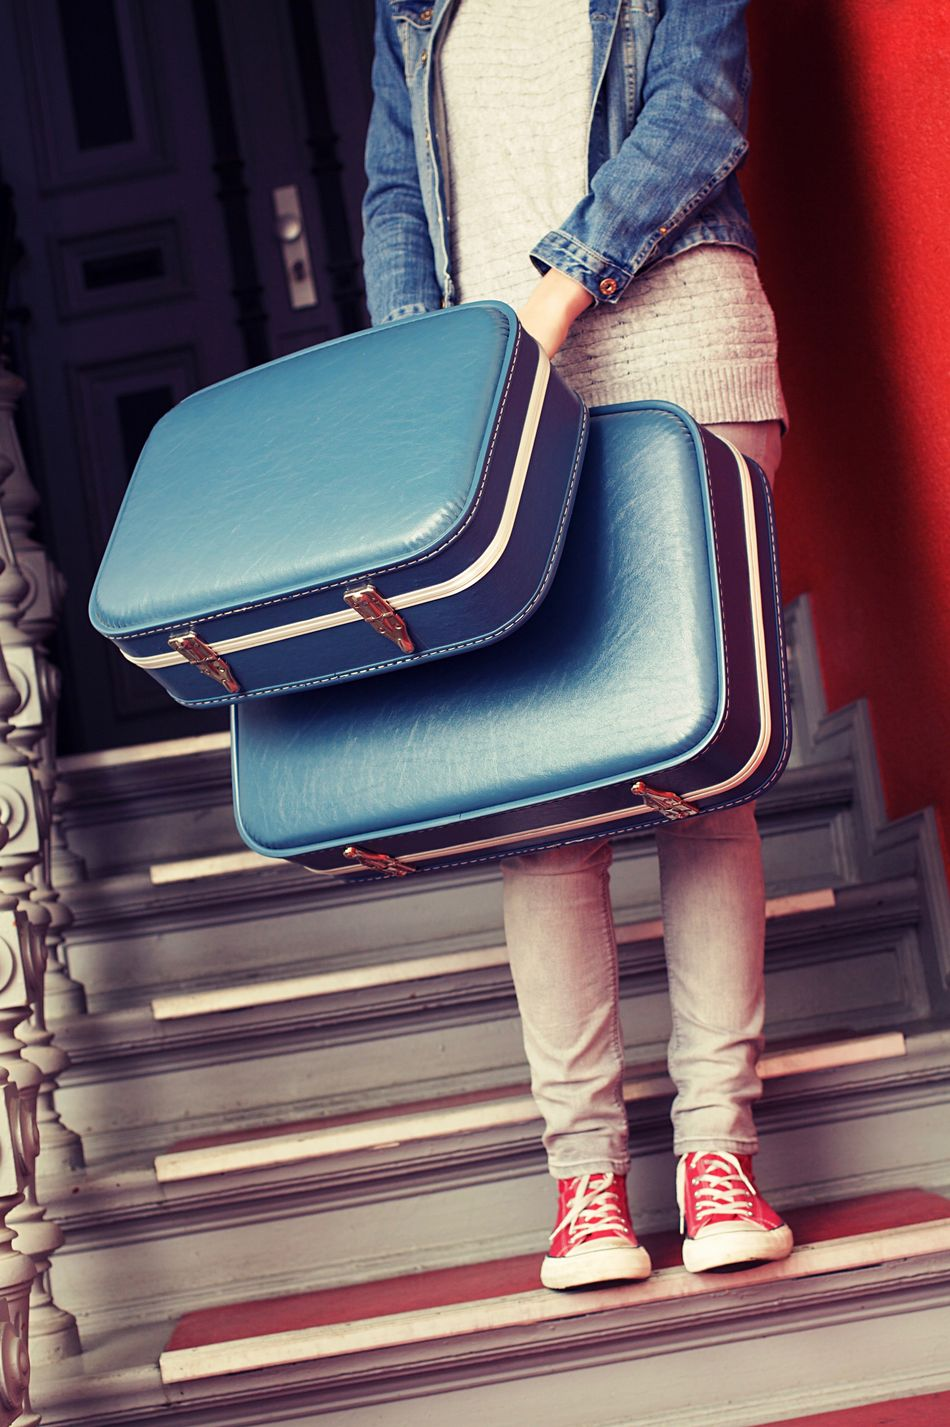 When kids are not kids anymore and go their own ways... Blue Casual Clothing Leaving Leaving Home Luggage Move Out One Person People Real People Stairs Stairwell Standing Suitcase Suitcases Travel Traveling Travelling Young Adult Young Woman Youth